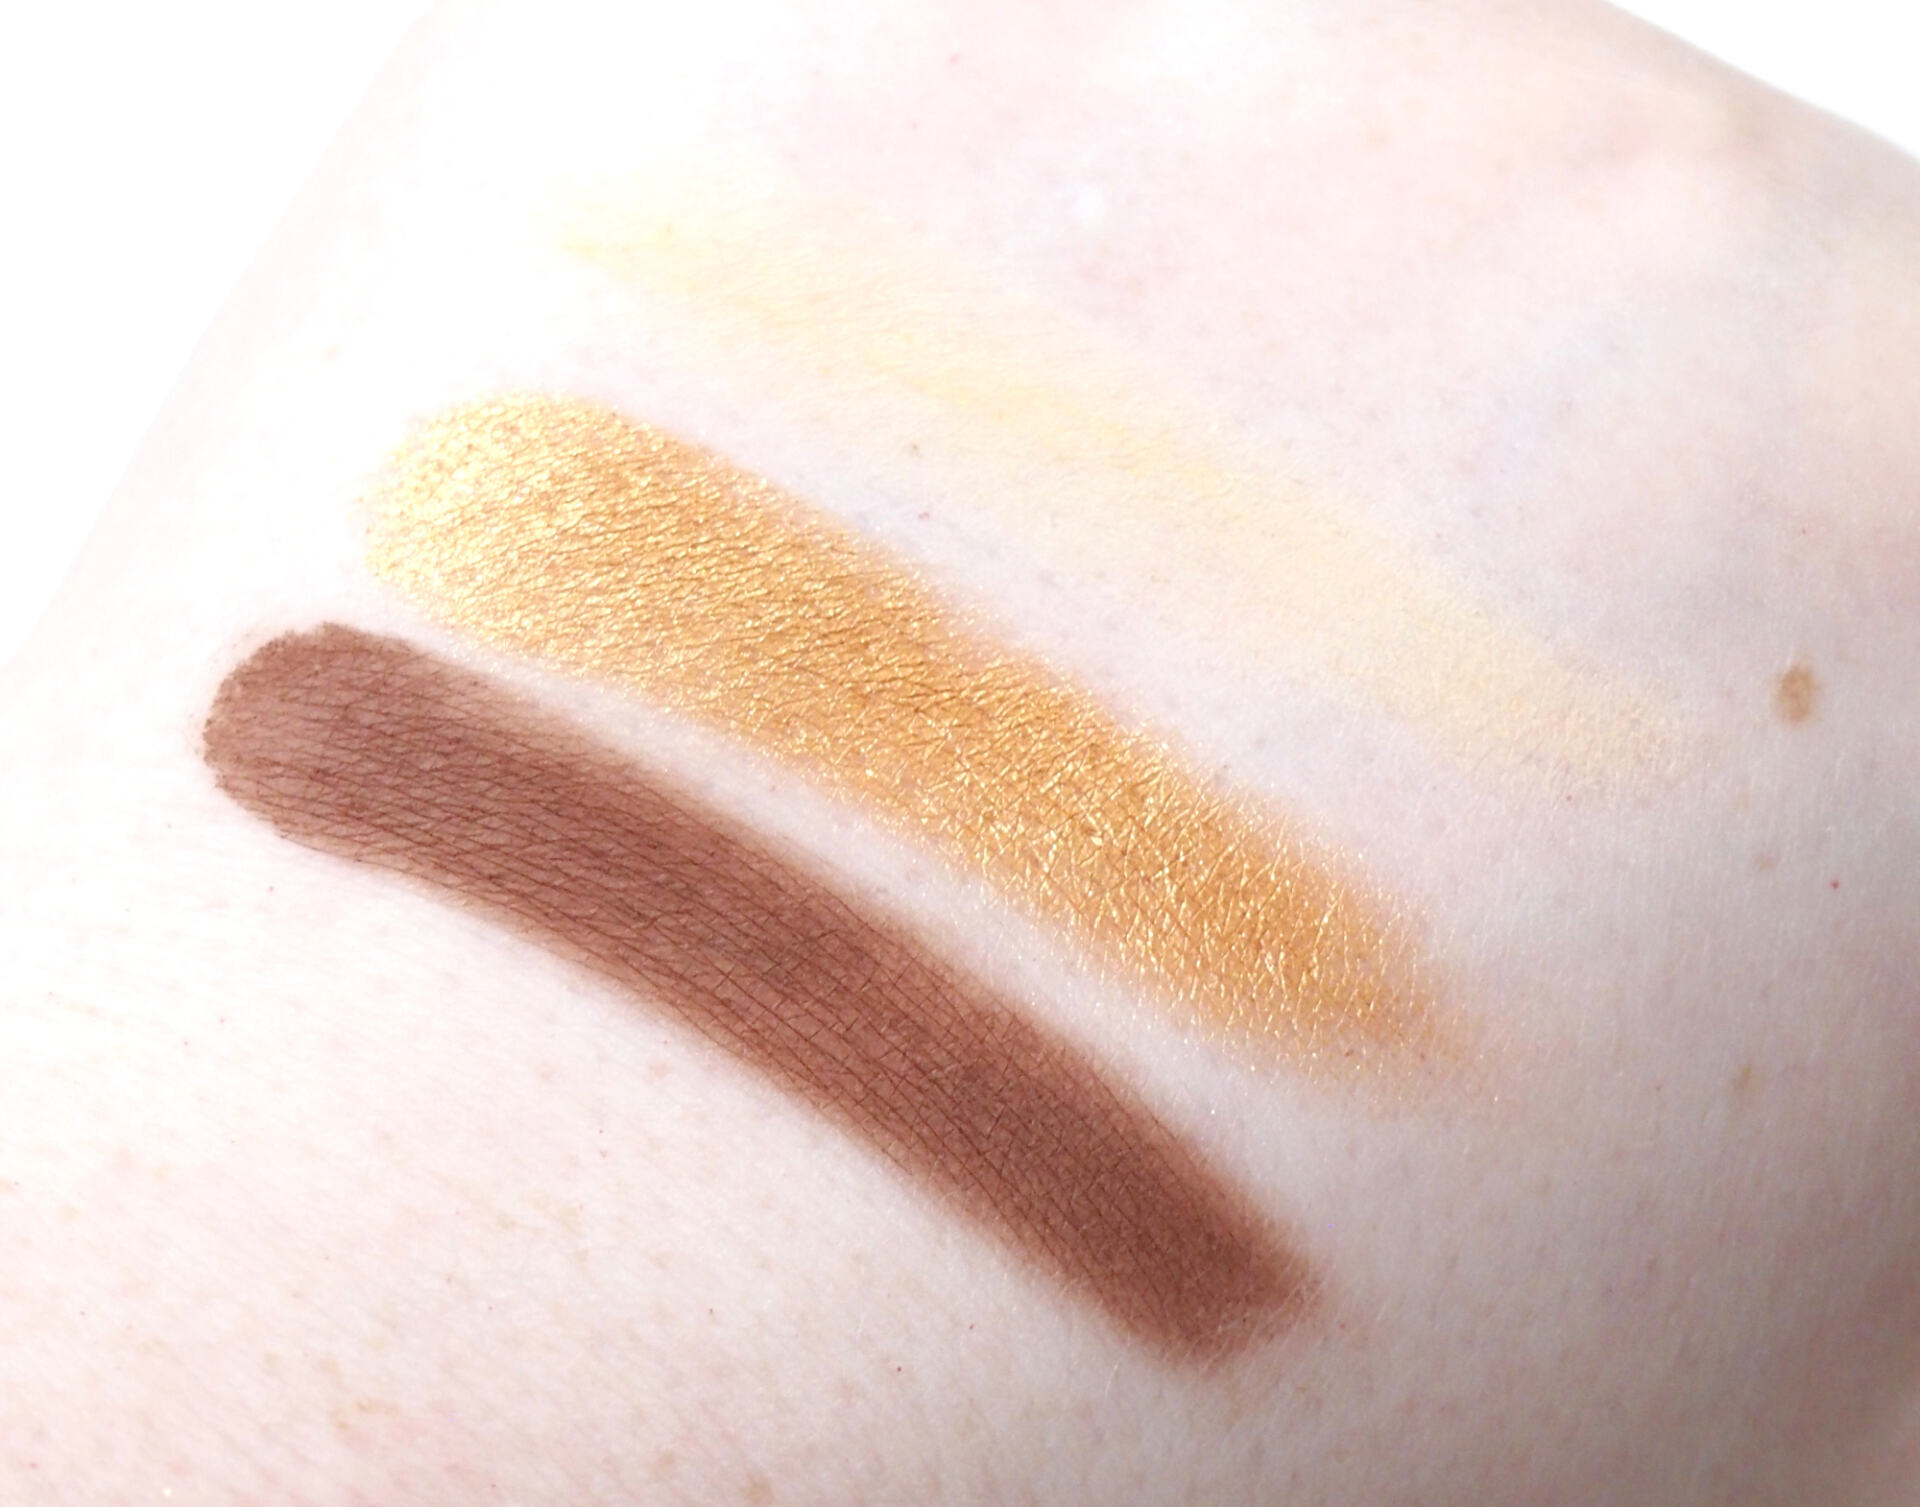 Huda Beauty Toffee Brown Obsessions Eyeshadow Palette Review Swatches